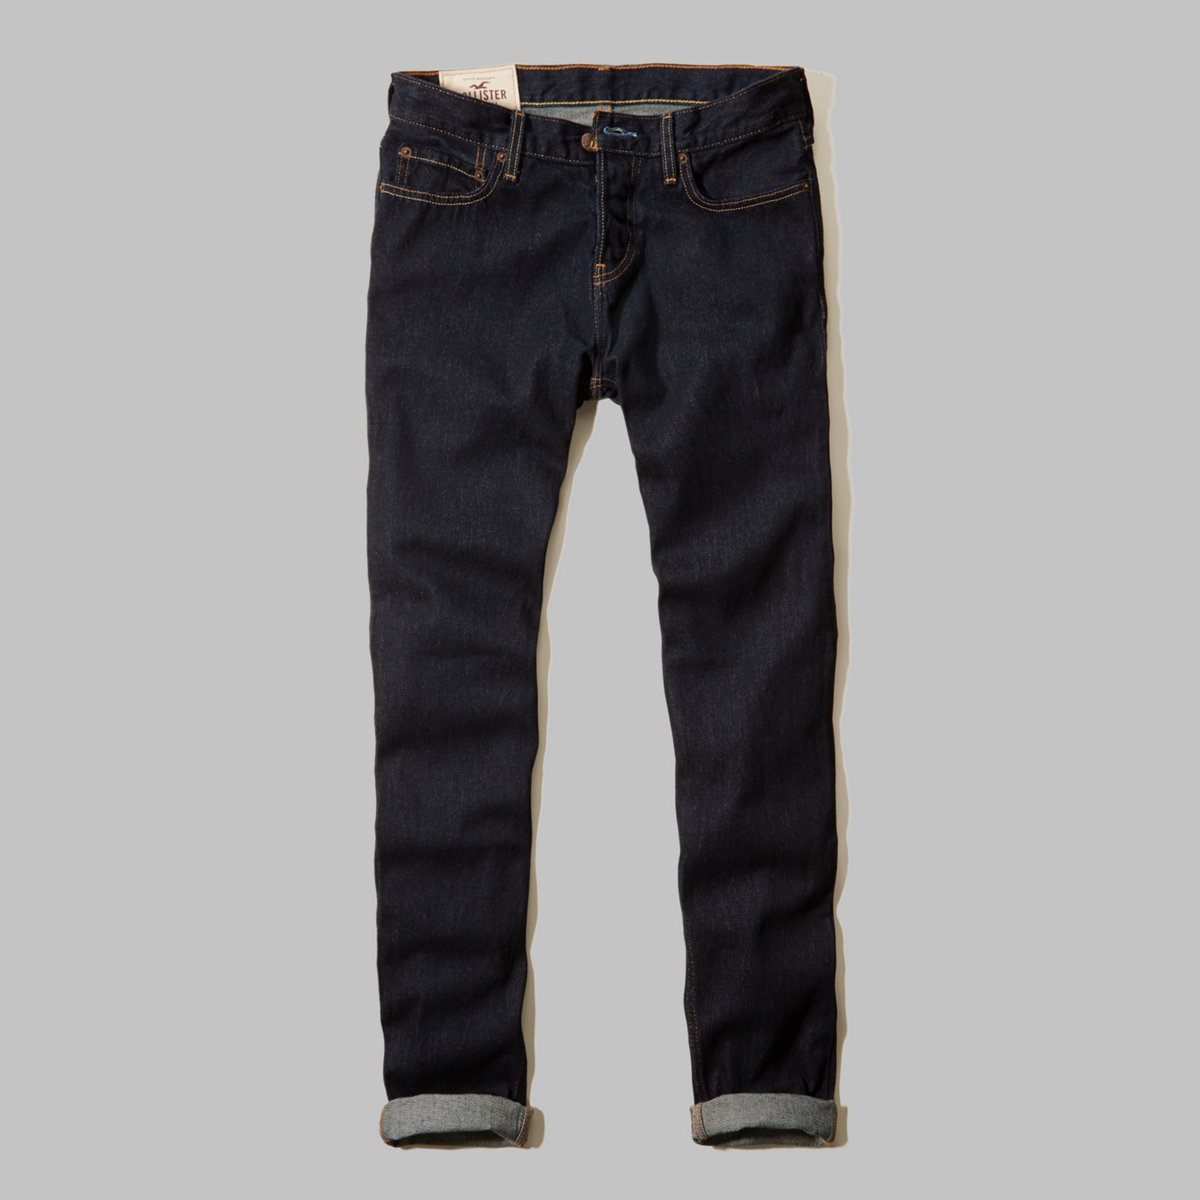 Hollister Classic Taper Button Fly Jeans